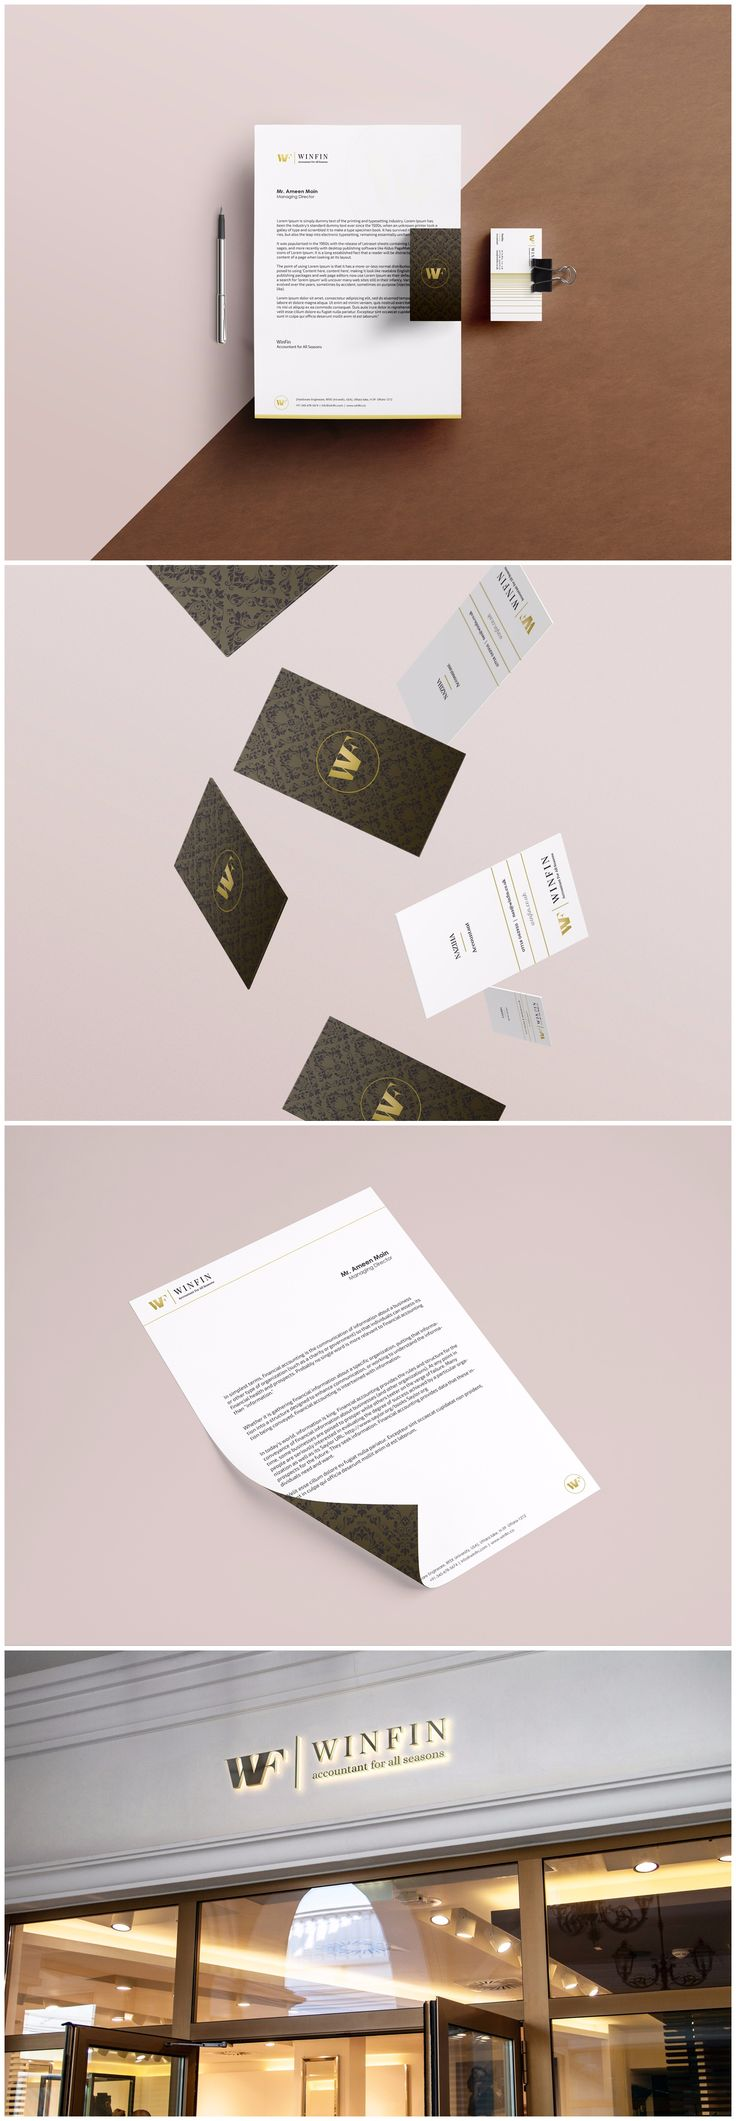 Branding For WinFin Accountant Firm WinFin is an accounting firm in Dubai. We refined their existing logo design with new branding guidelines and also designed stylish business cards for them to hand out. #design #graphicdesign #graphicdesigner #logodesign #webdesign #illustration #art via http://83oranges.com